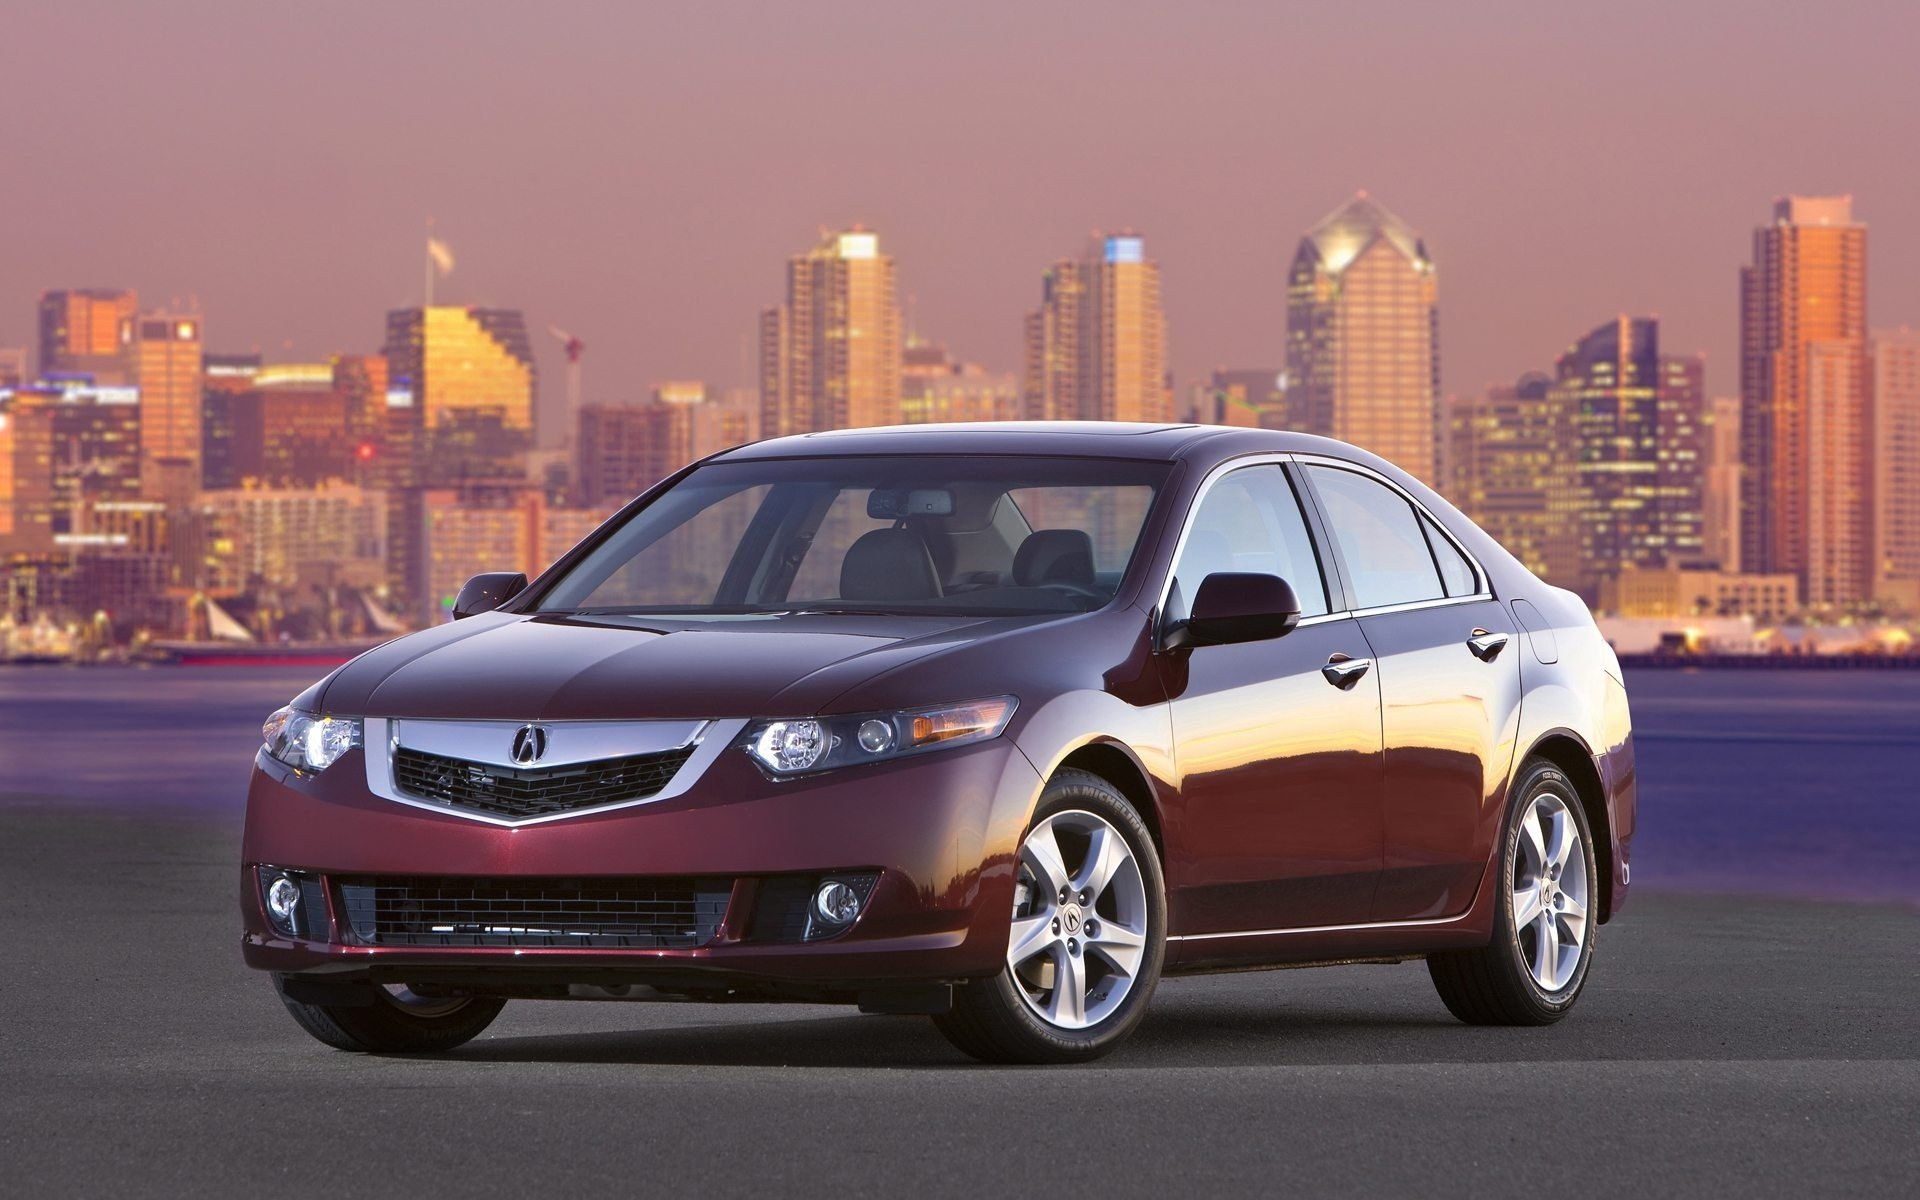 Acura Tsx Hd Wallpaper Background Image 1920x1200 Id 253504 Wallpaper Abyss